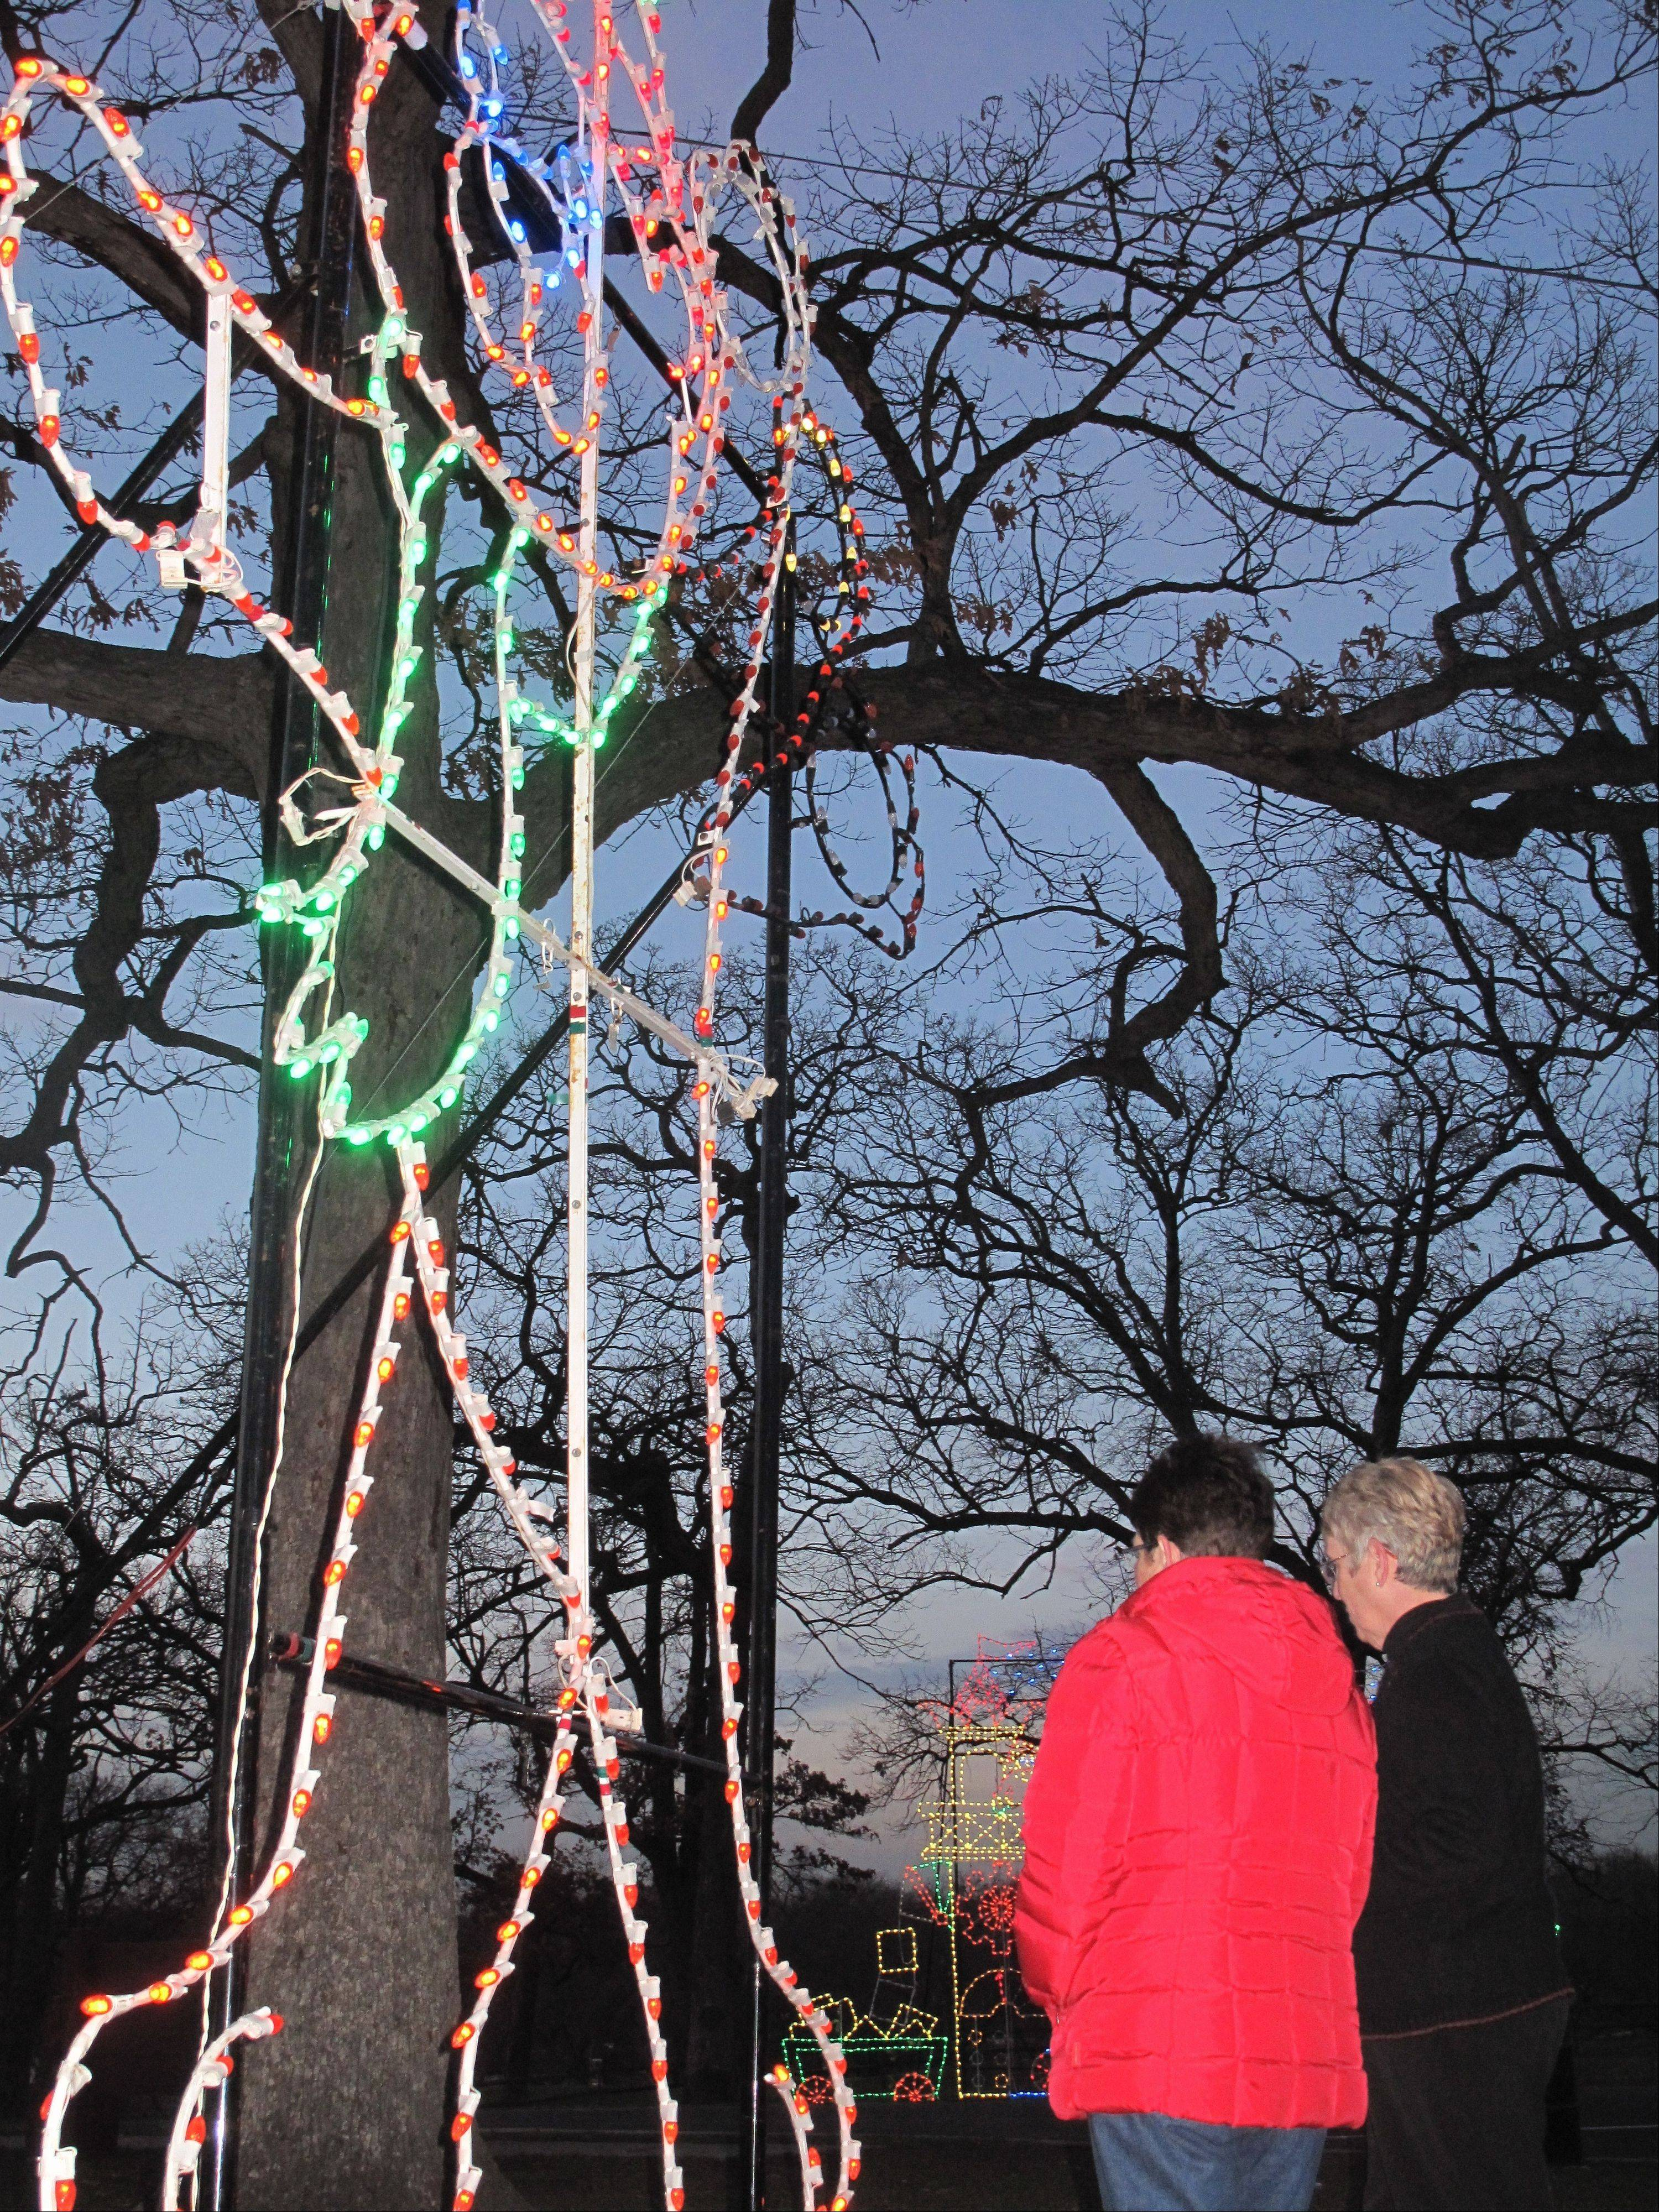 Almost 50 animated and static light displays are situated among the tall, stately trees of Phillips Park in Aurora for the sixth annual Festival of Lights, which runs until Dec. 26.